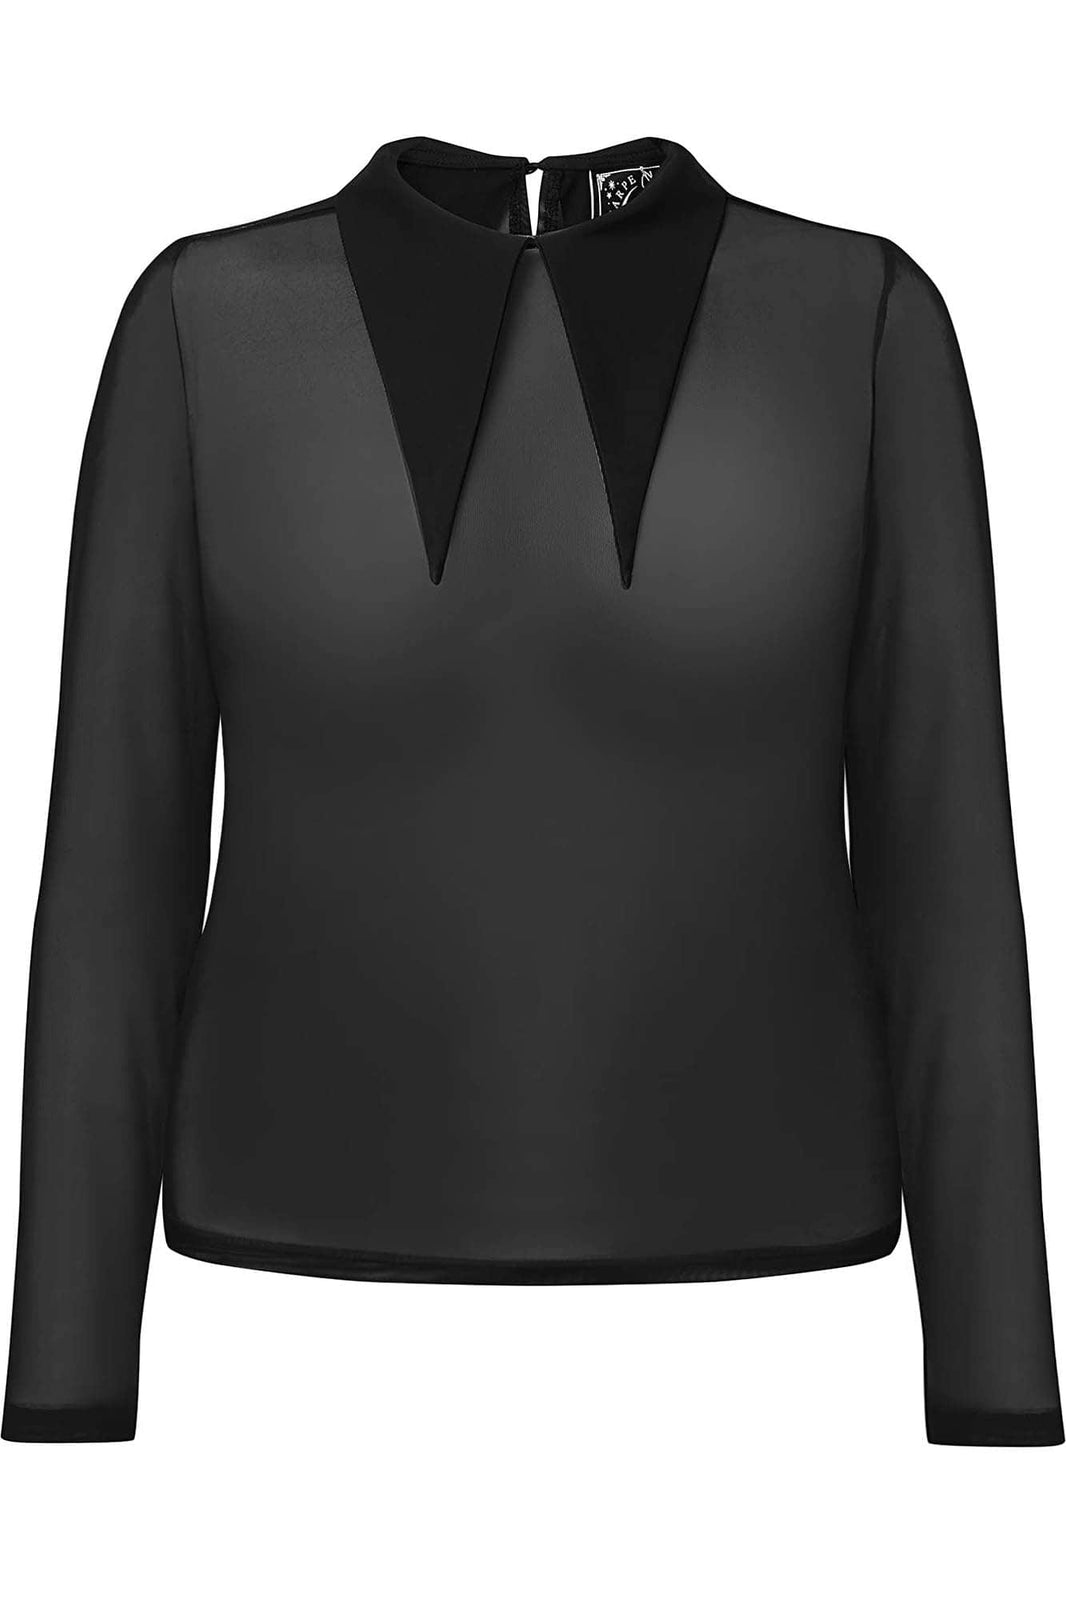 Spellman Long Sleeve Top [PLUS]